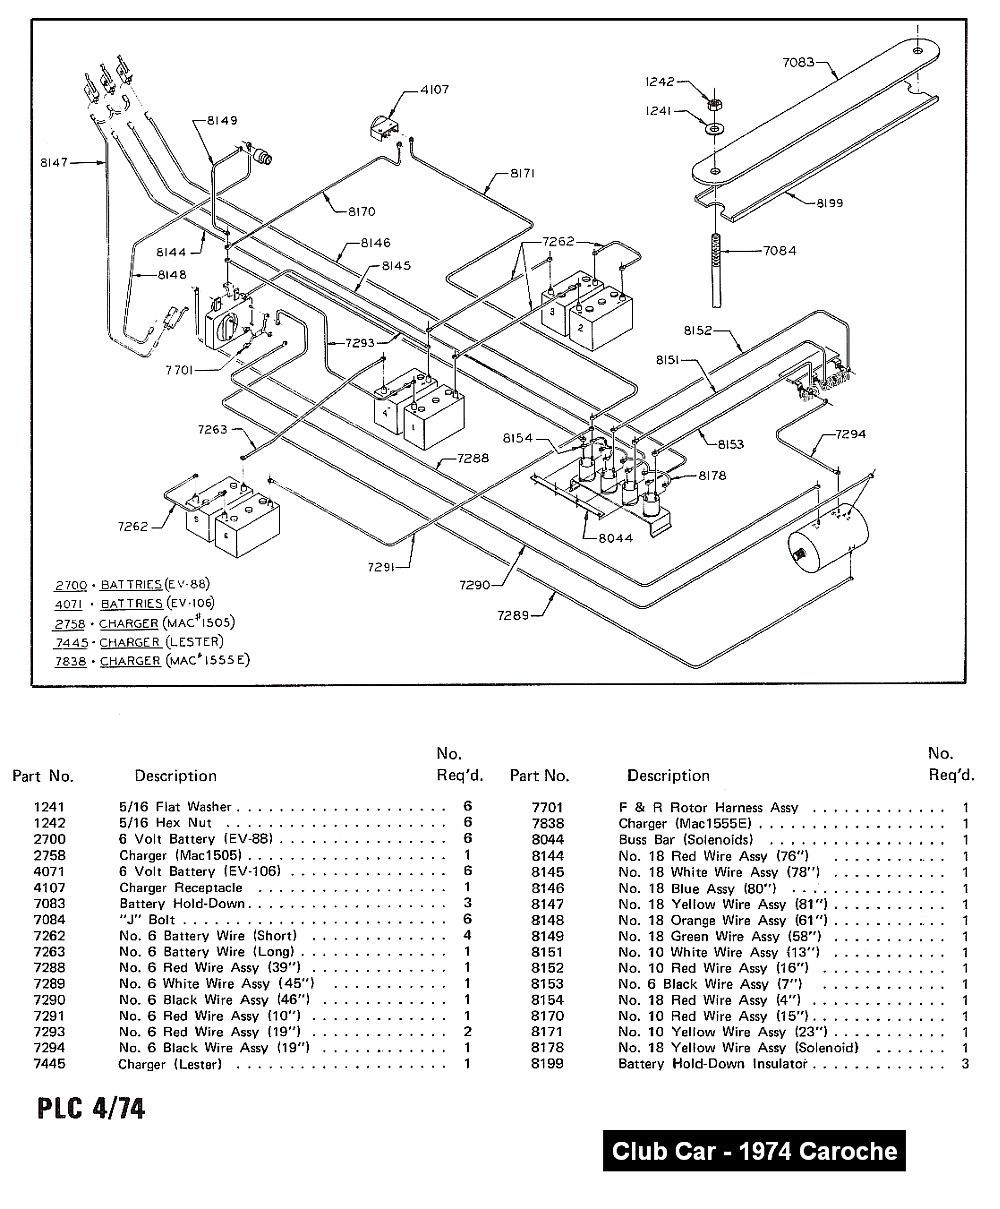 Wiring Diagram For Club Car 36 Volt : Club car golf cart parts diagram automotive